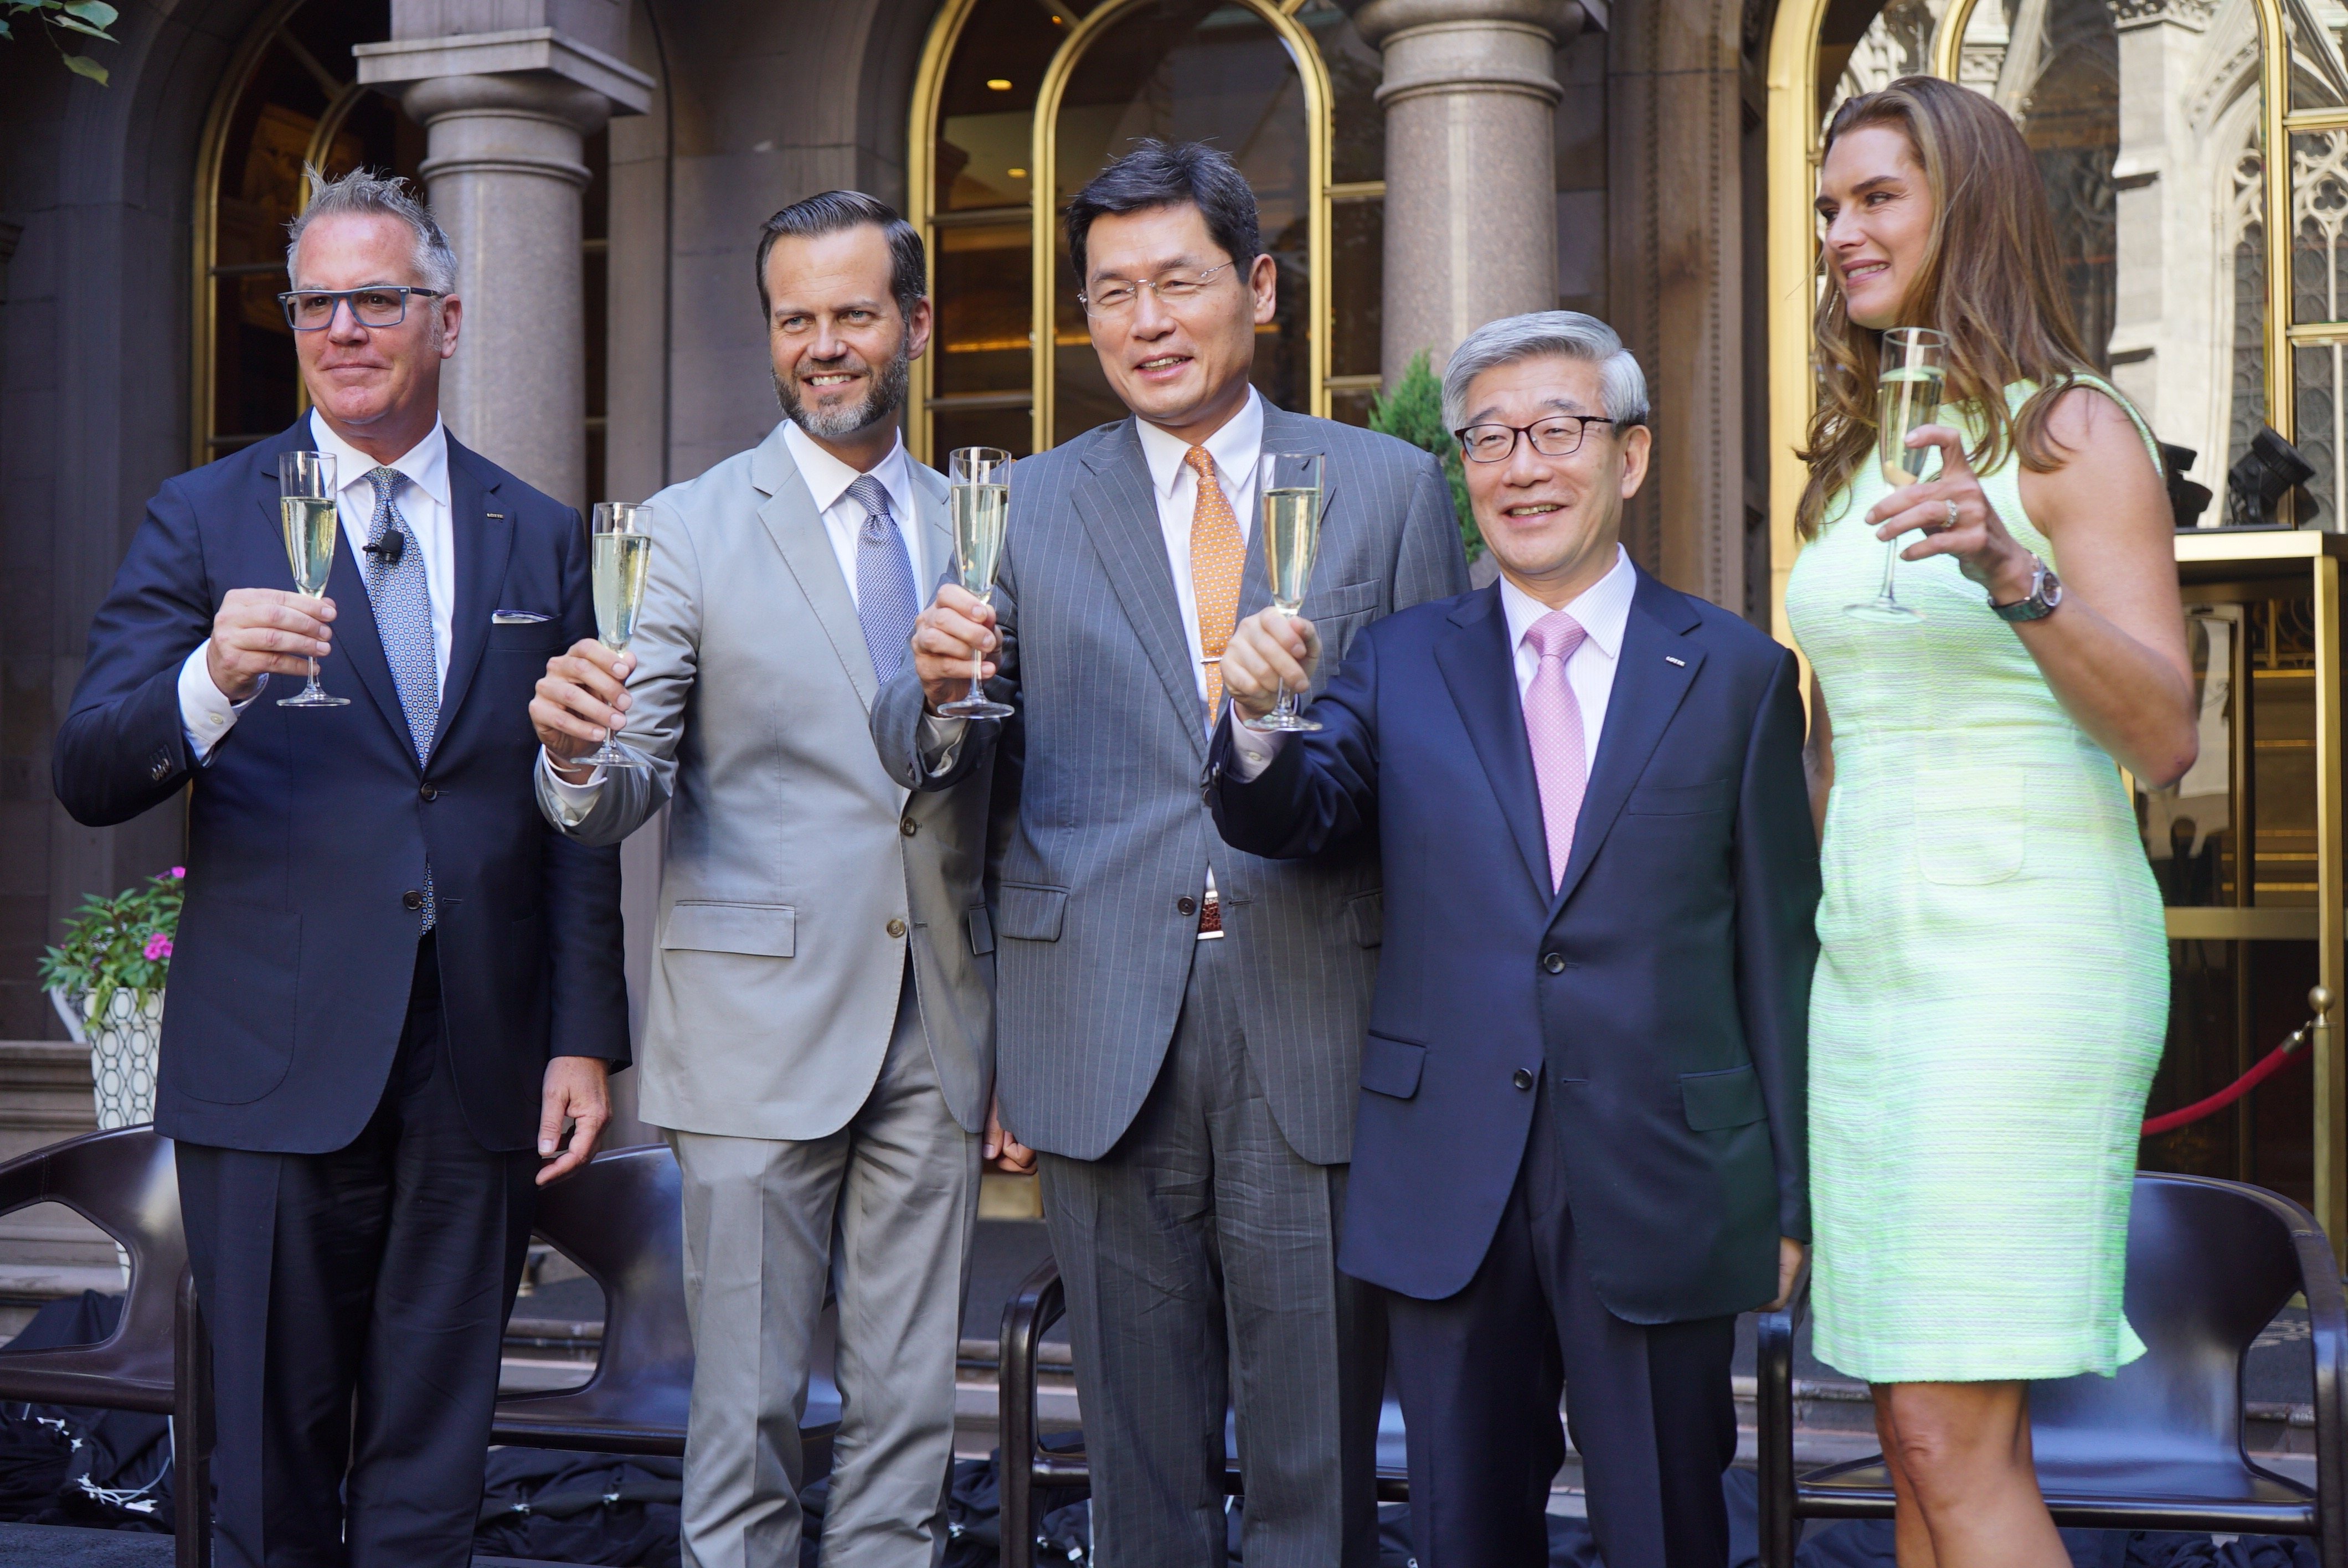 Unveiling Ceremony of the Lotte New York Palace Hotel